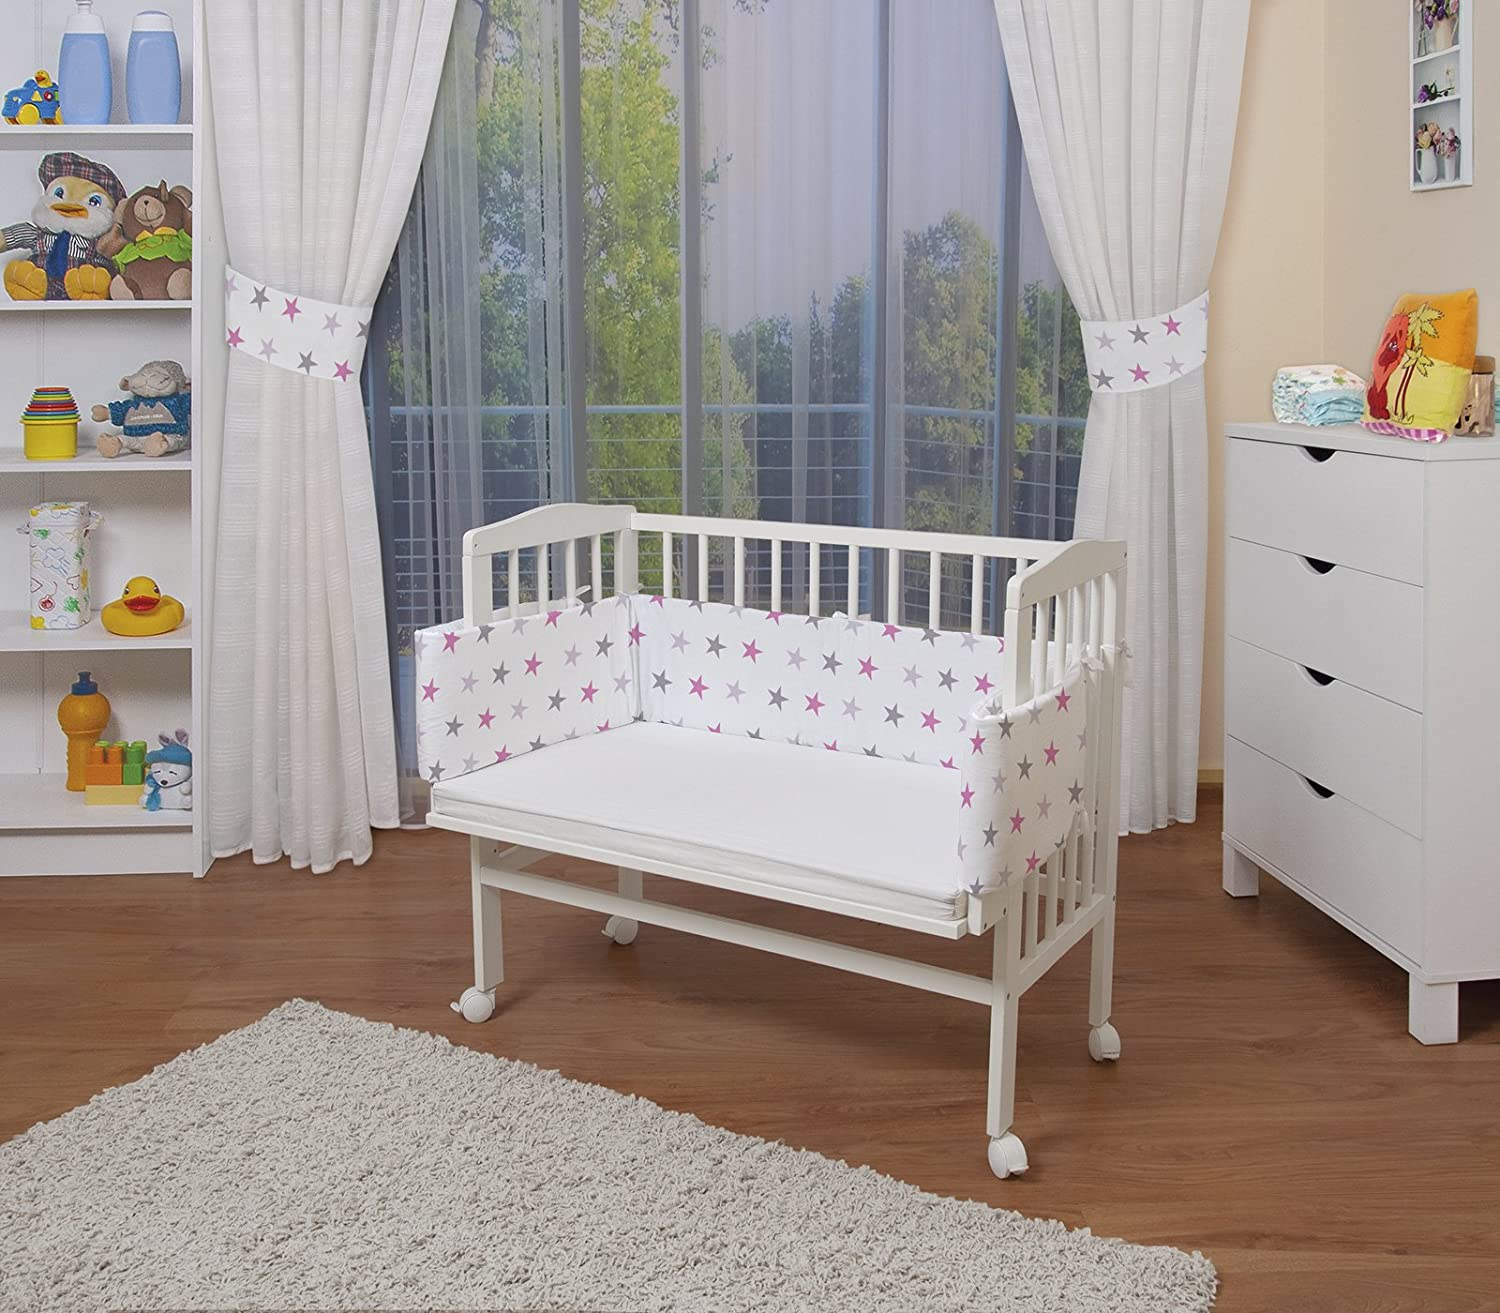 WALDIN Baby Bedside Cot Co-Sleeping height adjustable with bumper,16 models available, untreated,textile colour white